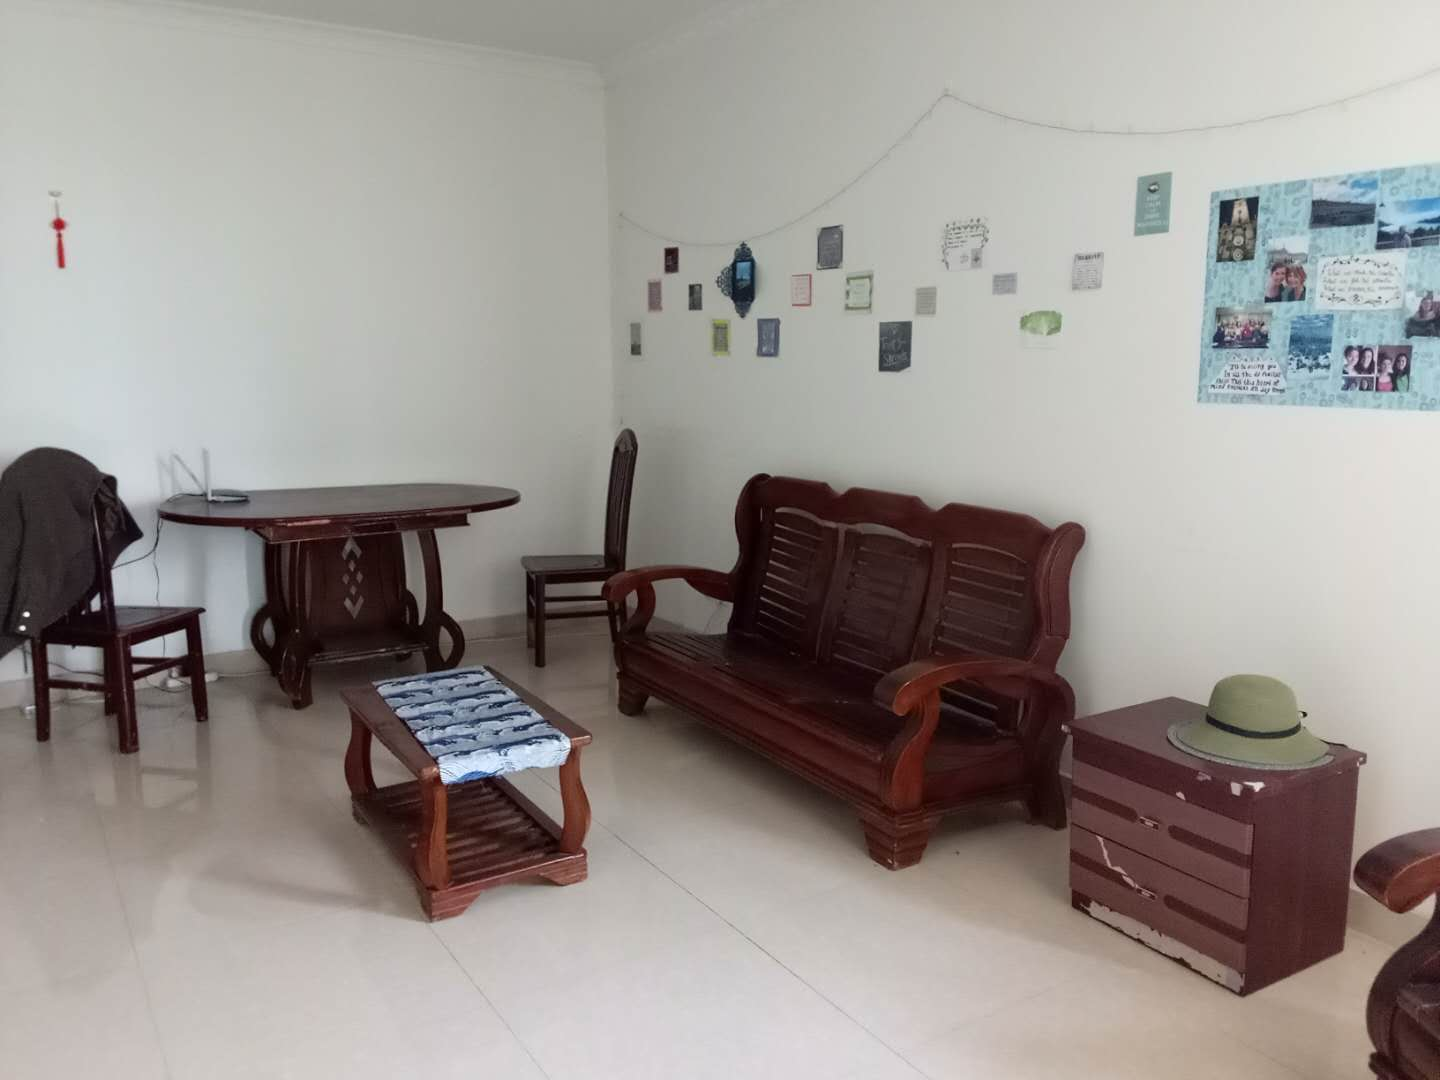 Creating a Home Away from Home in Suzhou, China